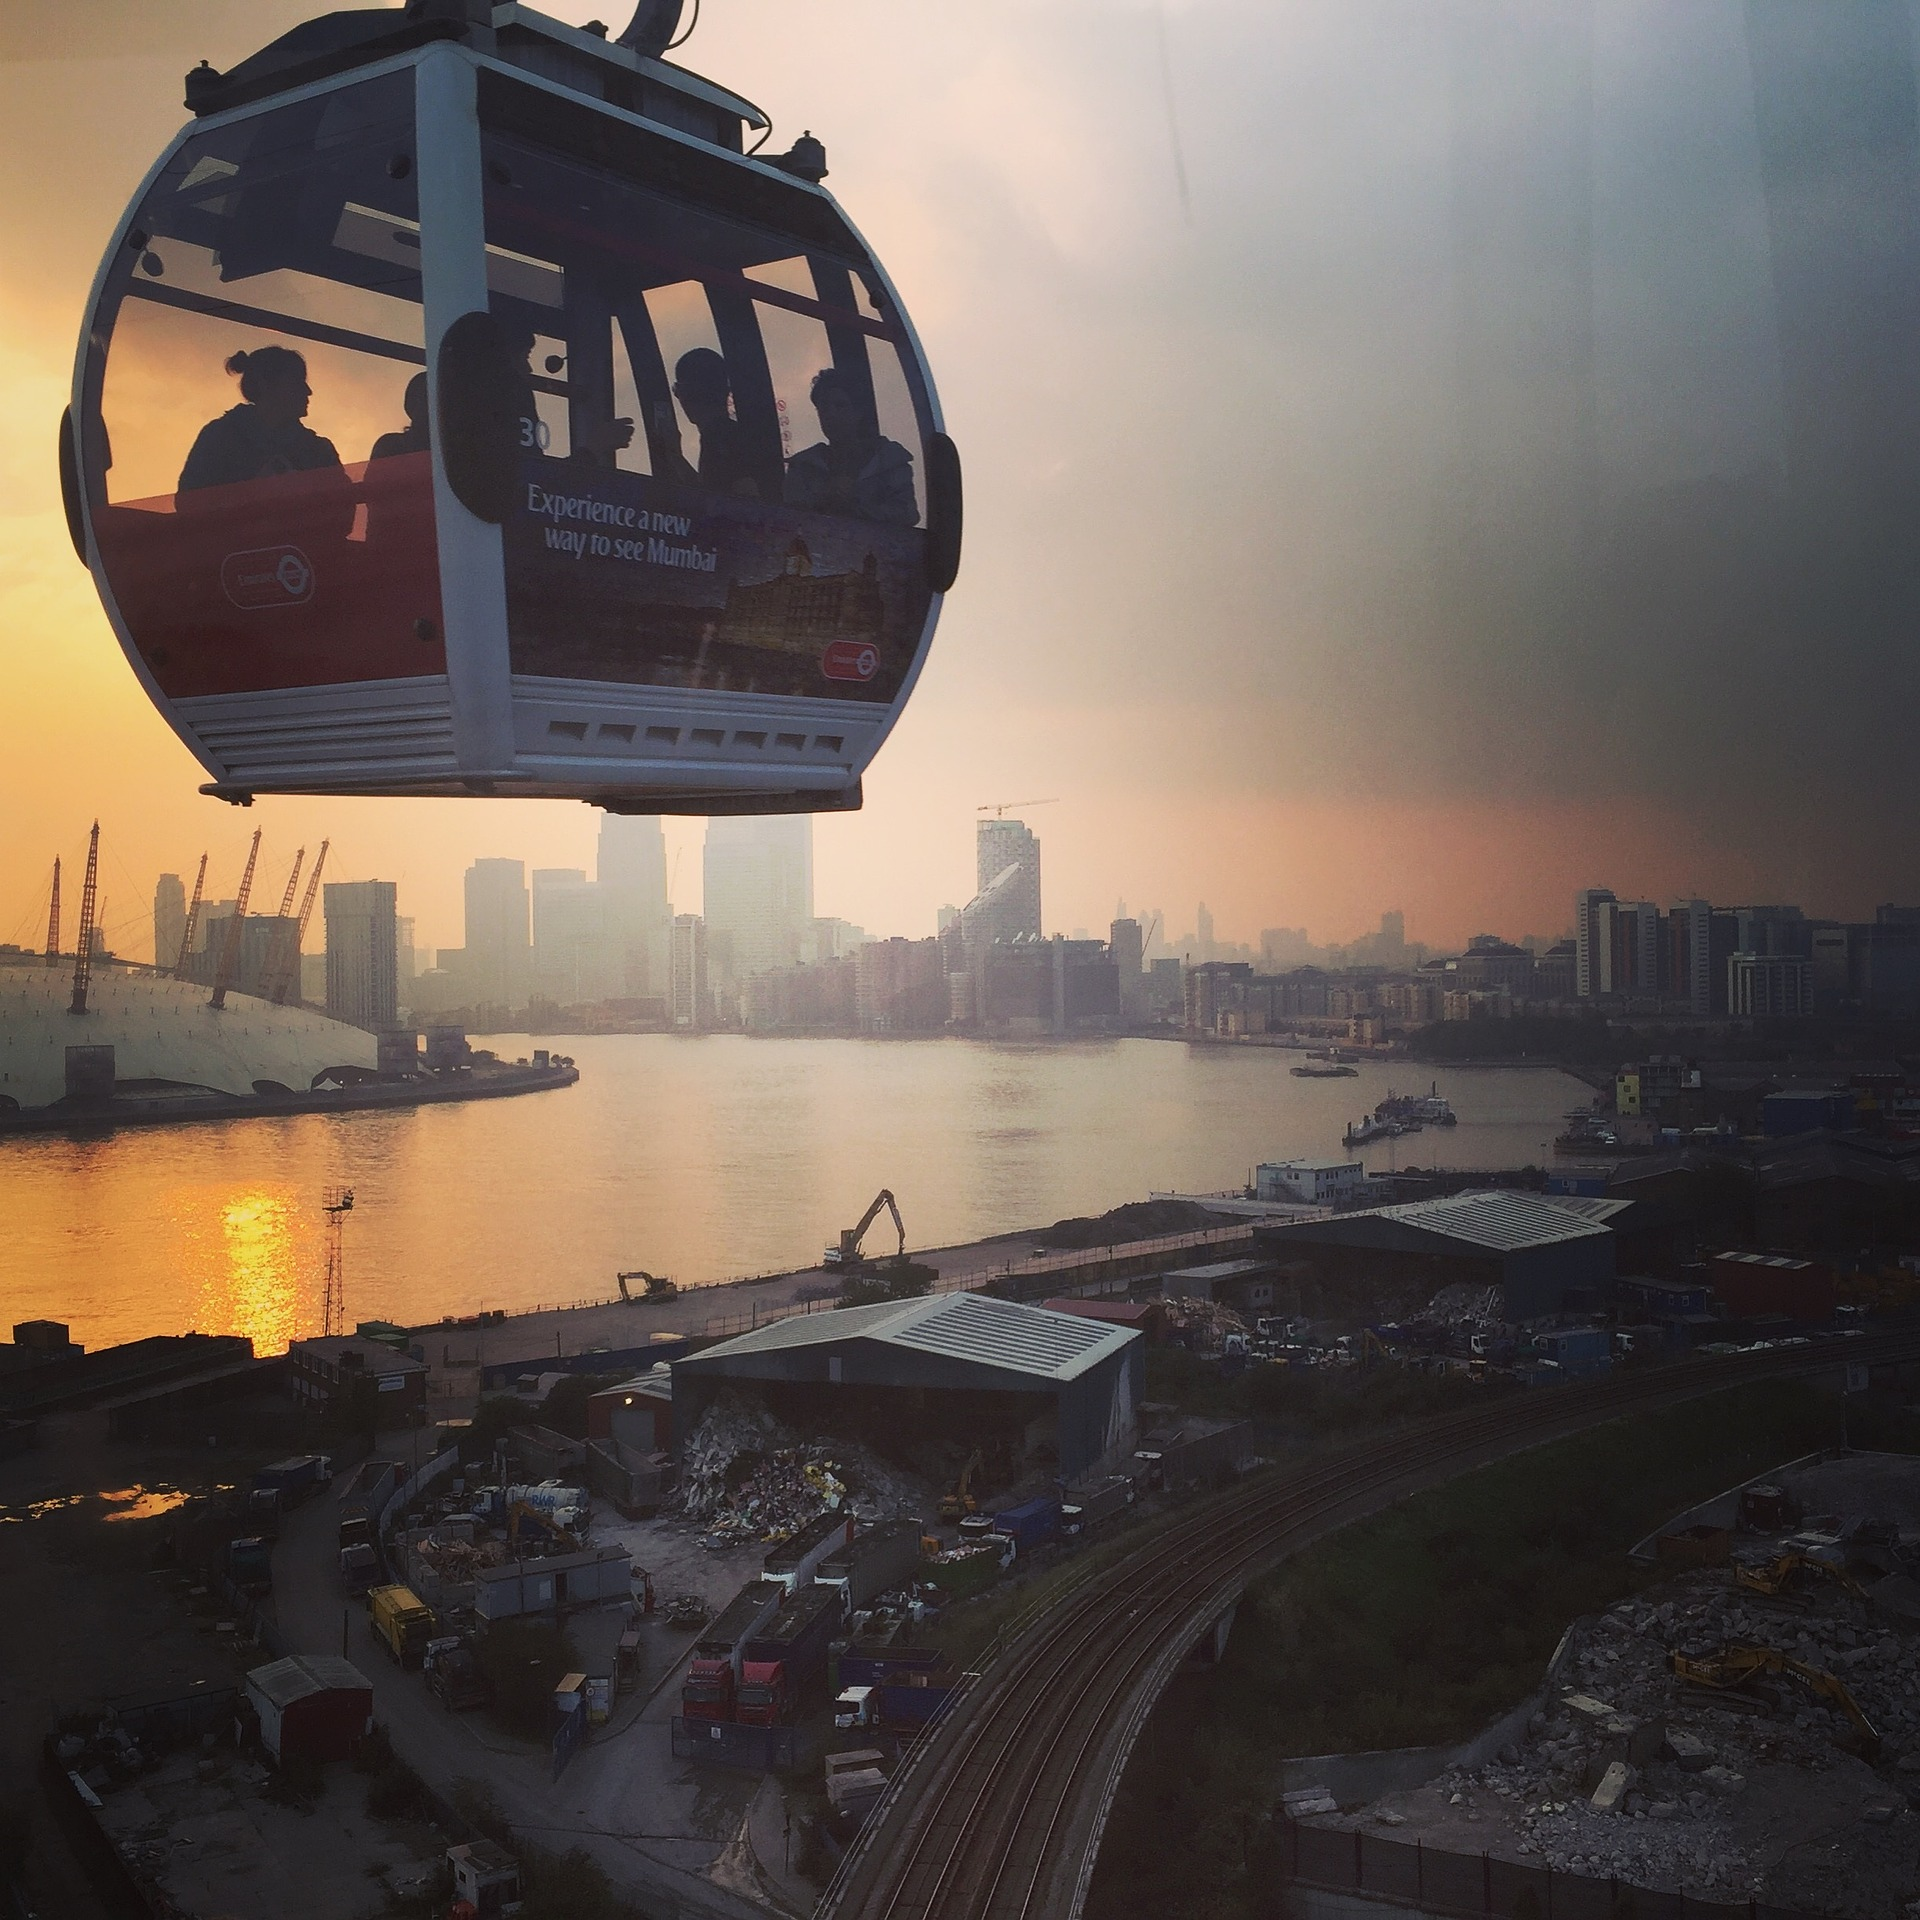 Air Line Cable Car, a only cable transport in the UK